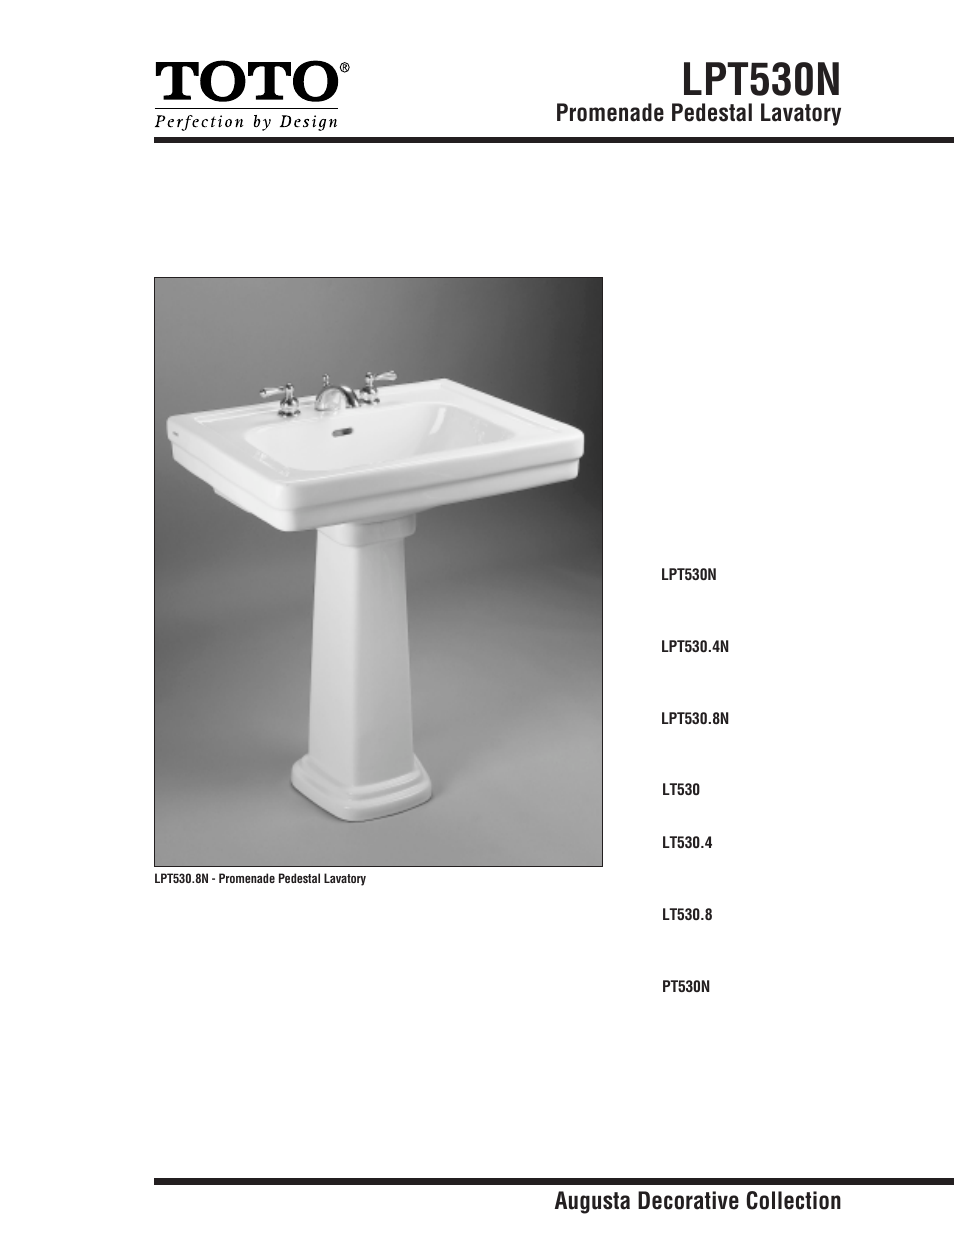 Factory Direct Hardware Toto PT530N User Manual | 2 pages | Also for ...